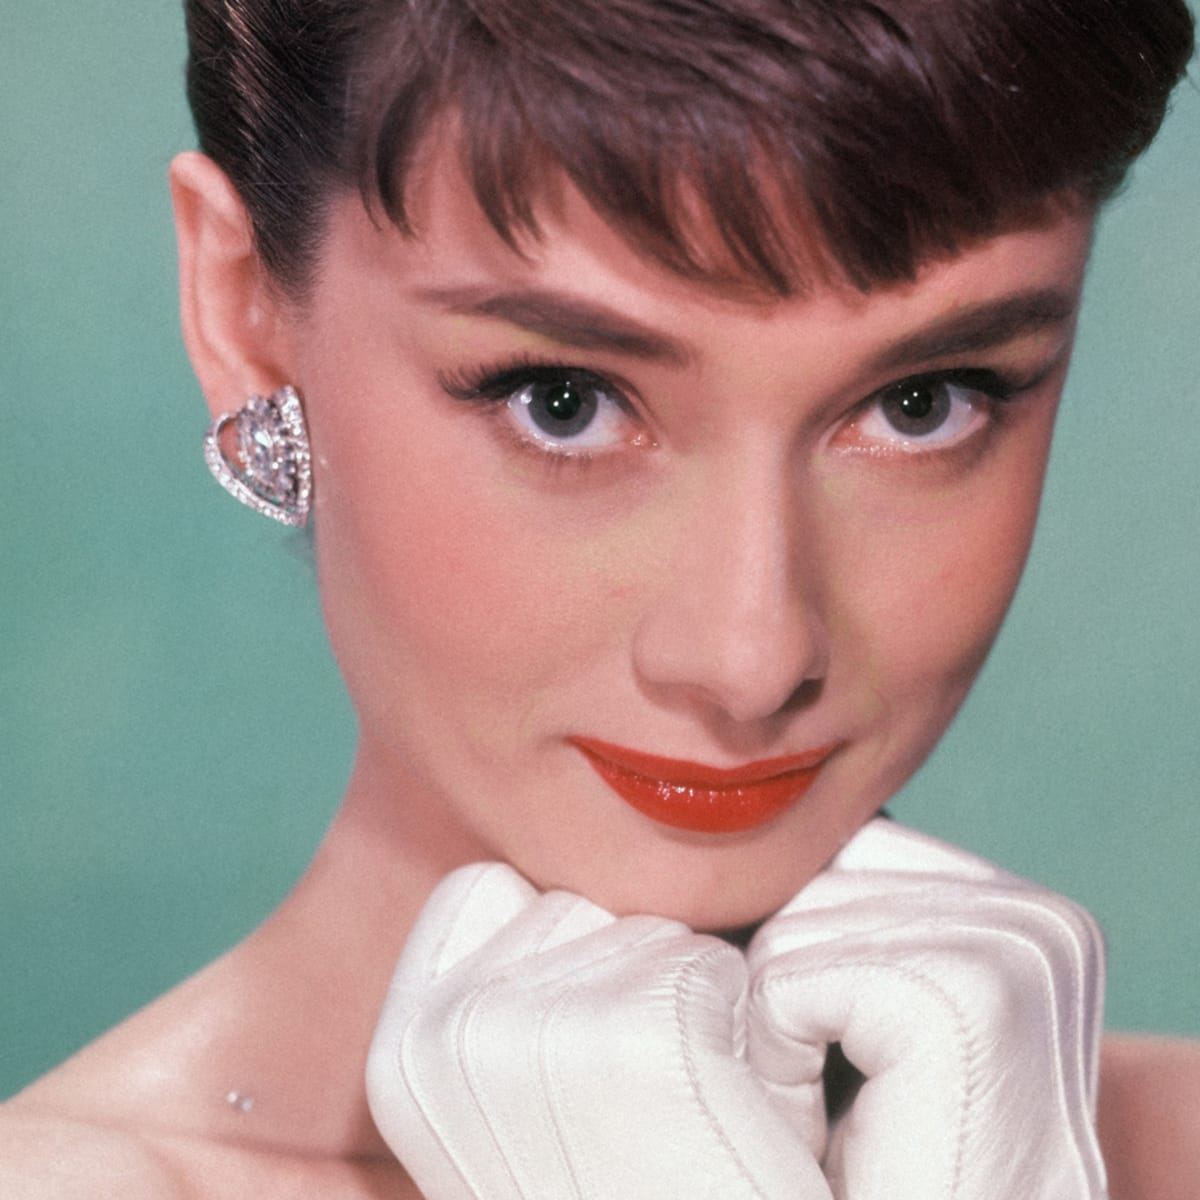 6 Facts You May Not Know About Audrey Hepburn - Biography